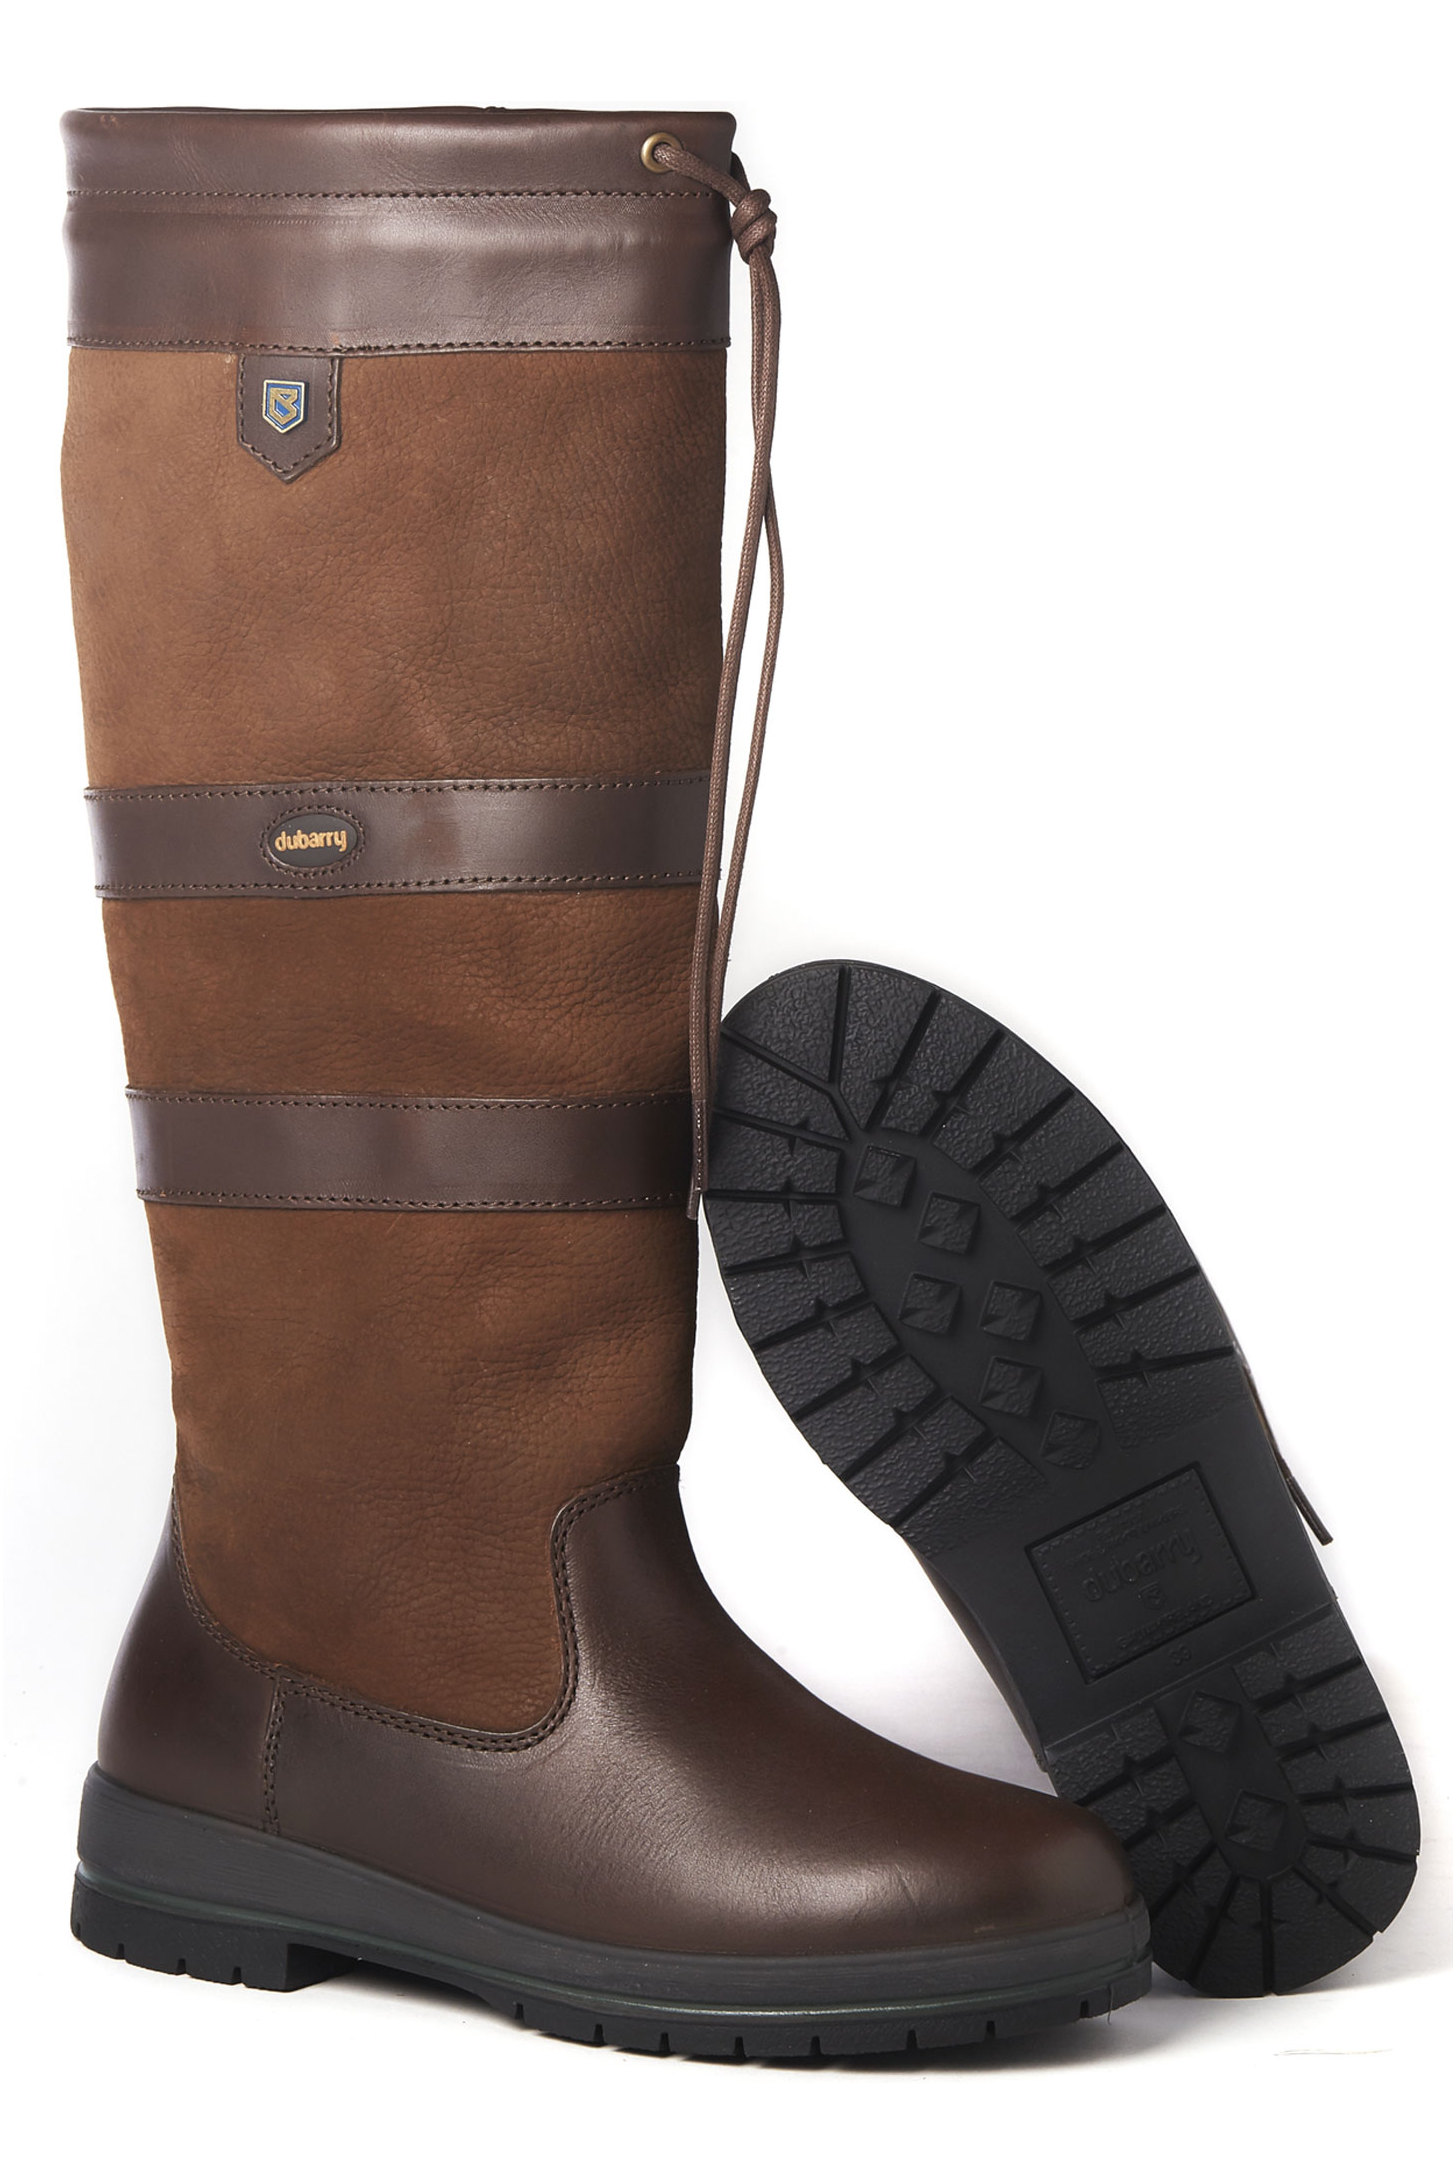 4ee680cbfd8 Dubarry Galway Extrafit Country Boot Walnut